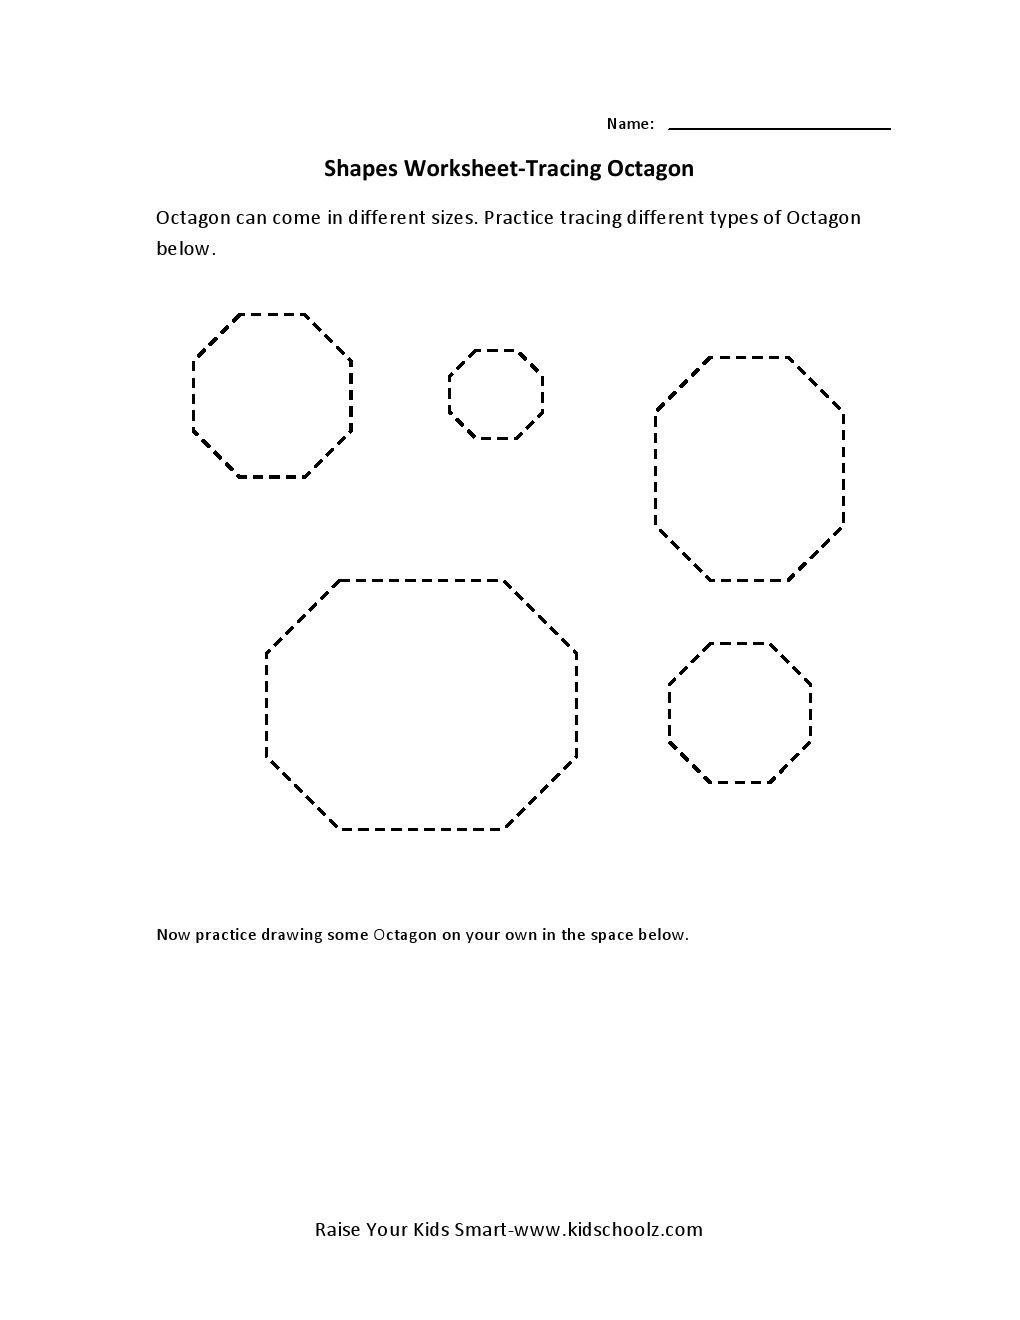 tracing worksheets octagon kids activity sheets free printable worksheets learning coloring - Activity Sheet For Preschoolers